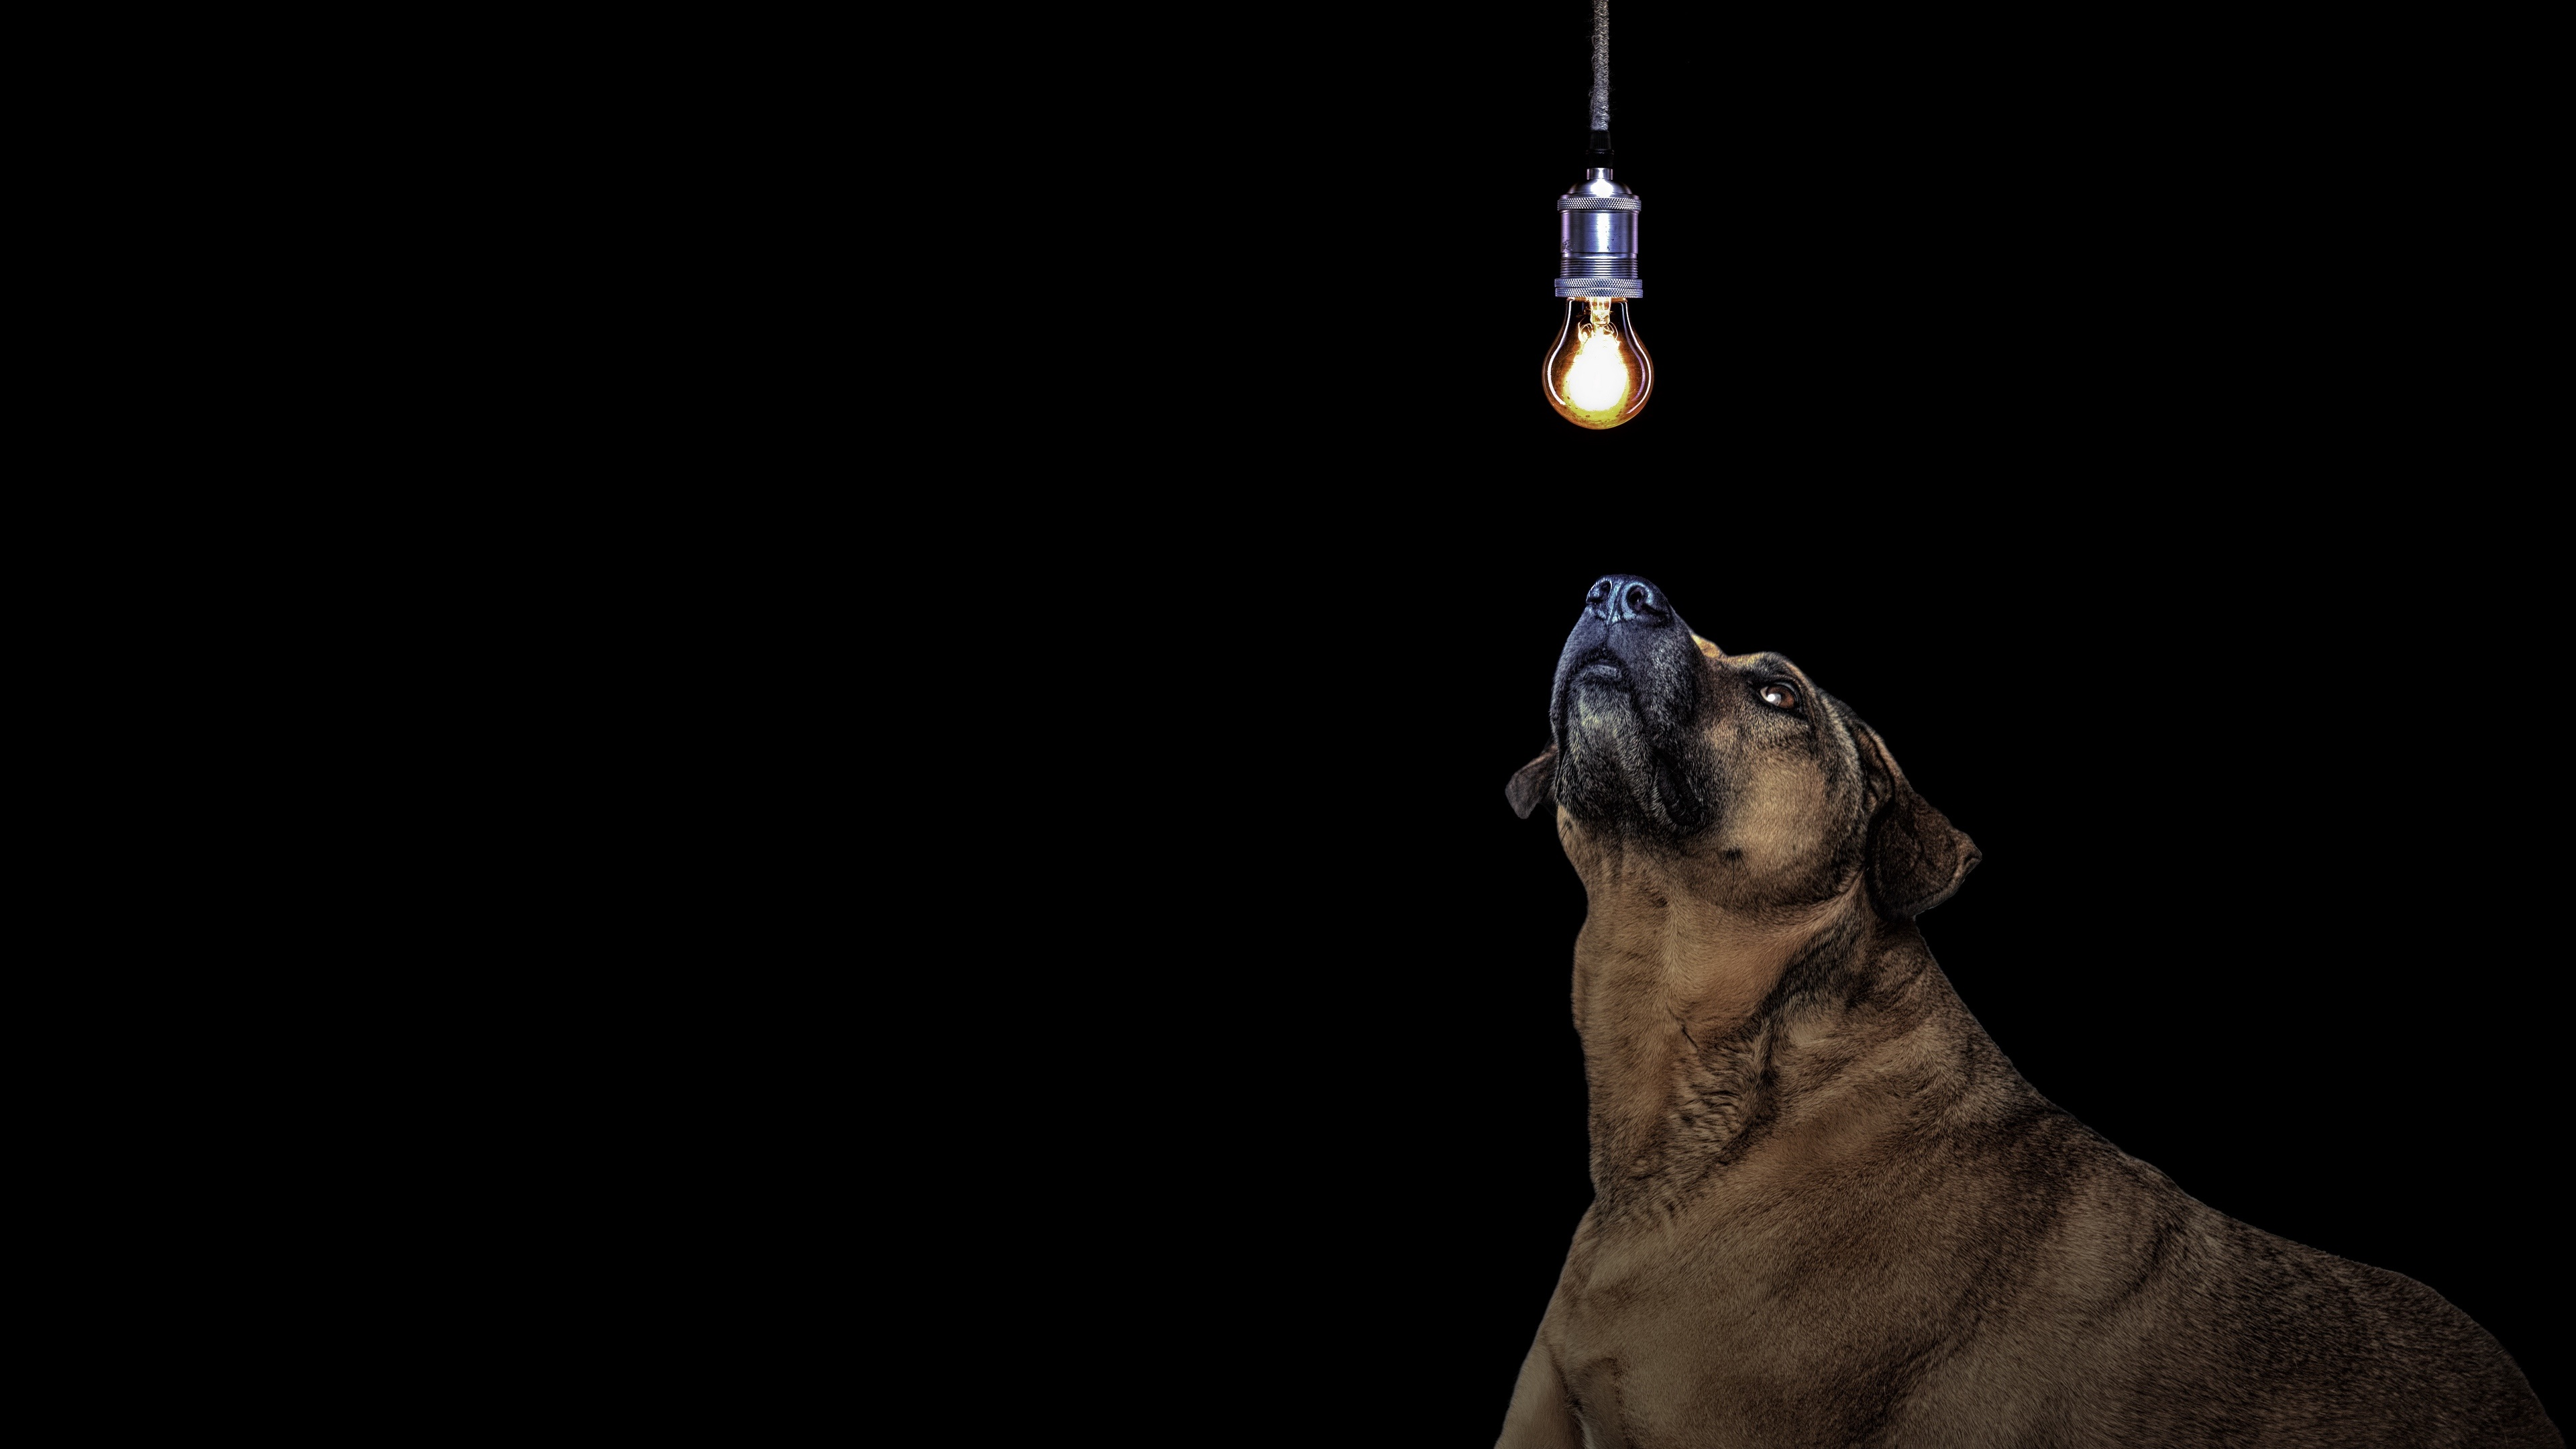 Dog and a bulb wallpaper